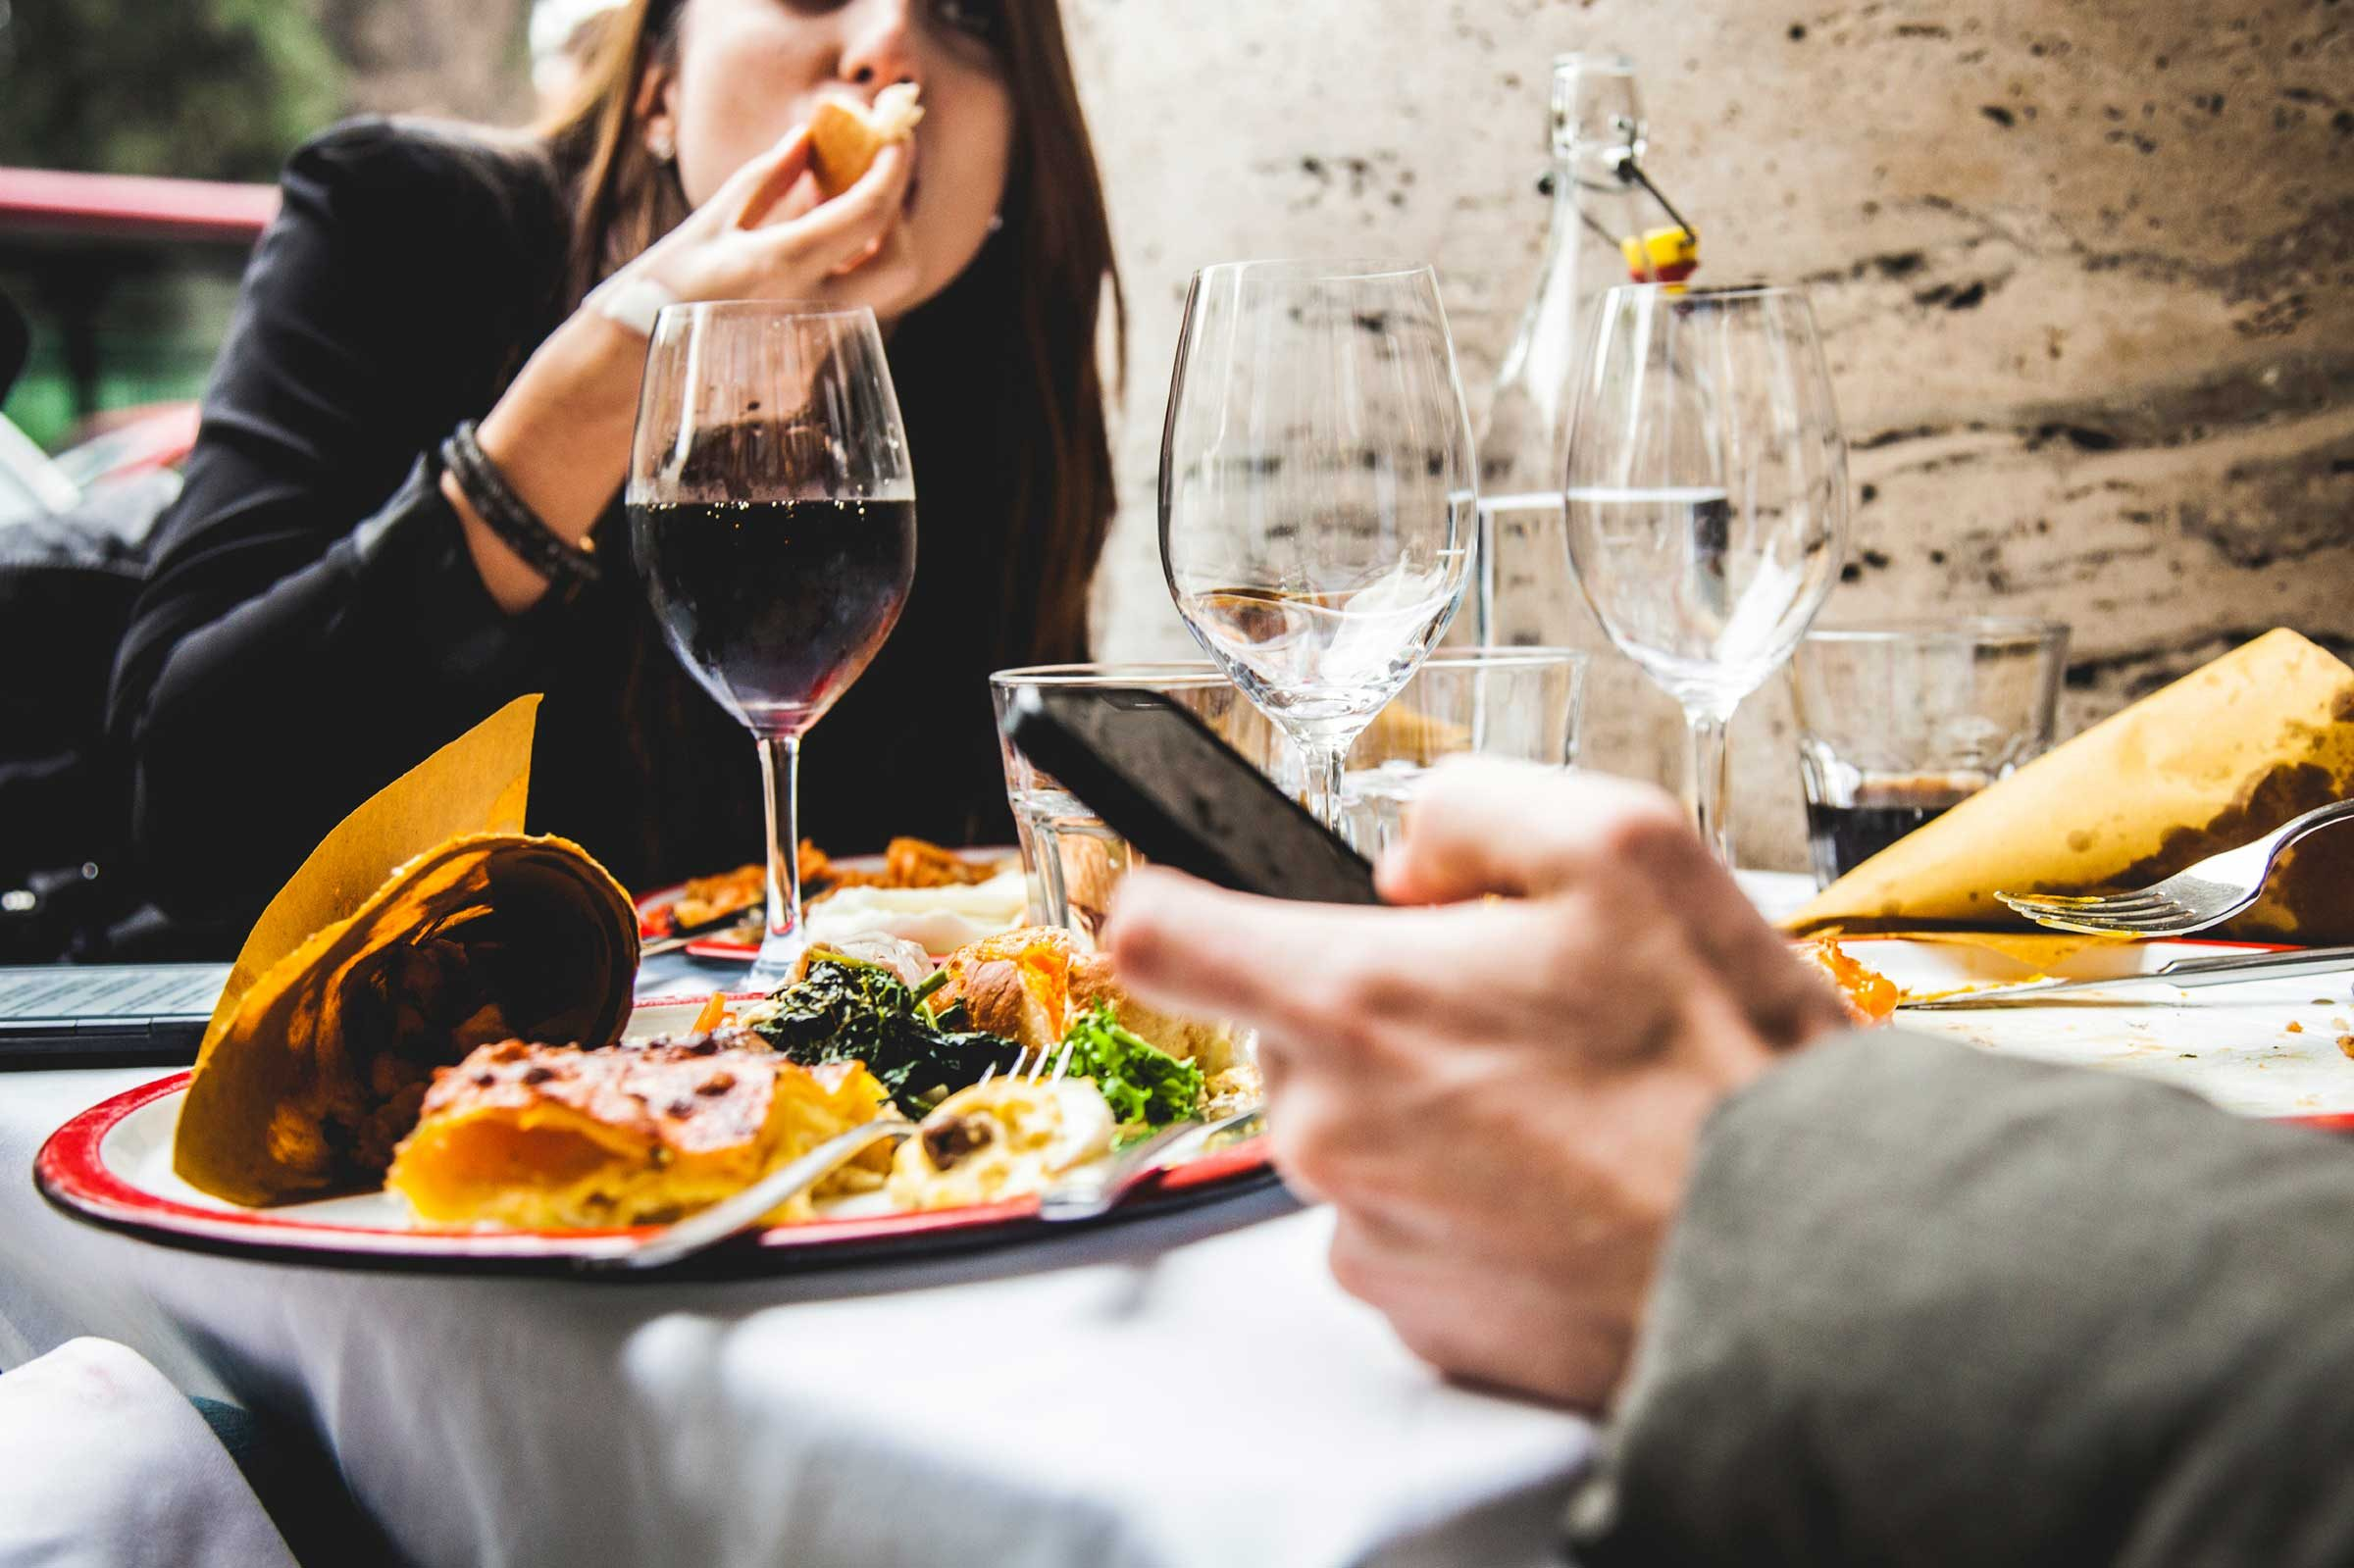 10 foods that all diabetics should avoid - Be A Savvy Diner